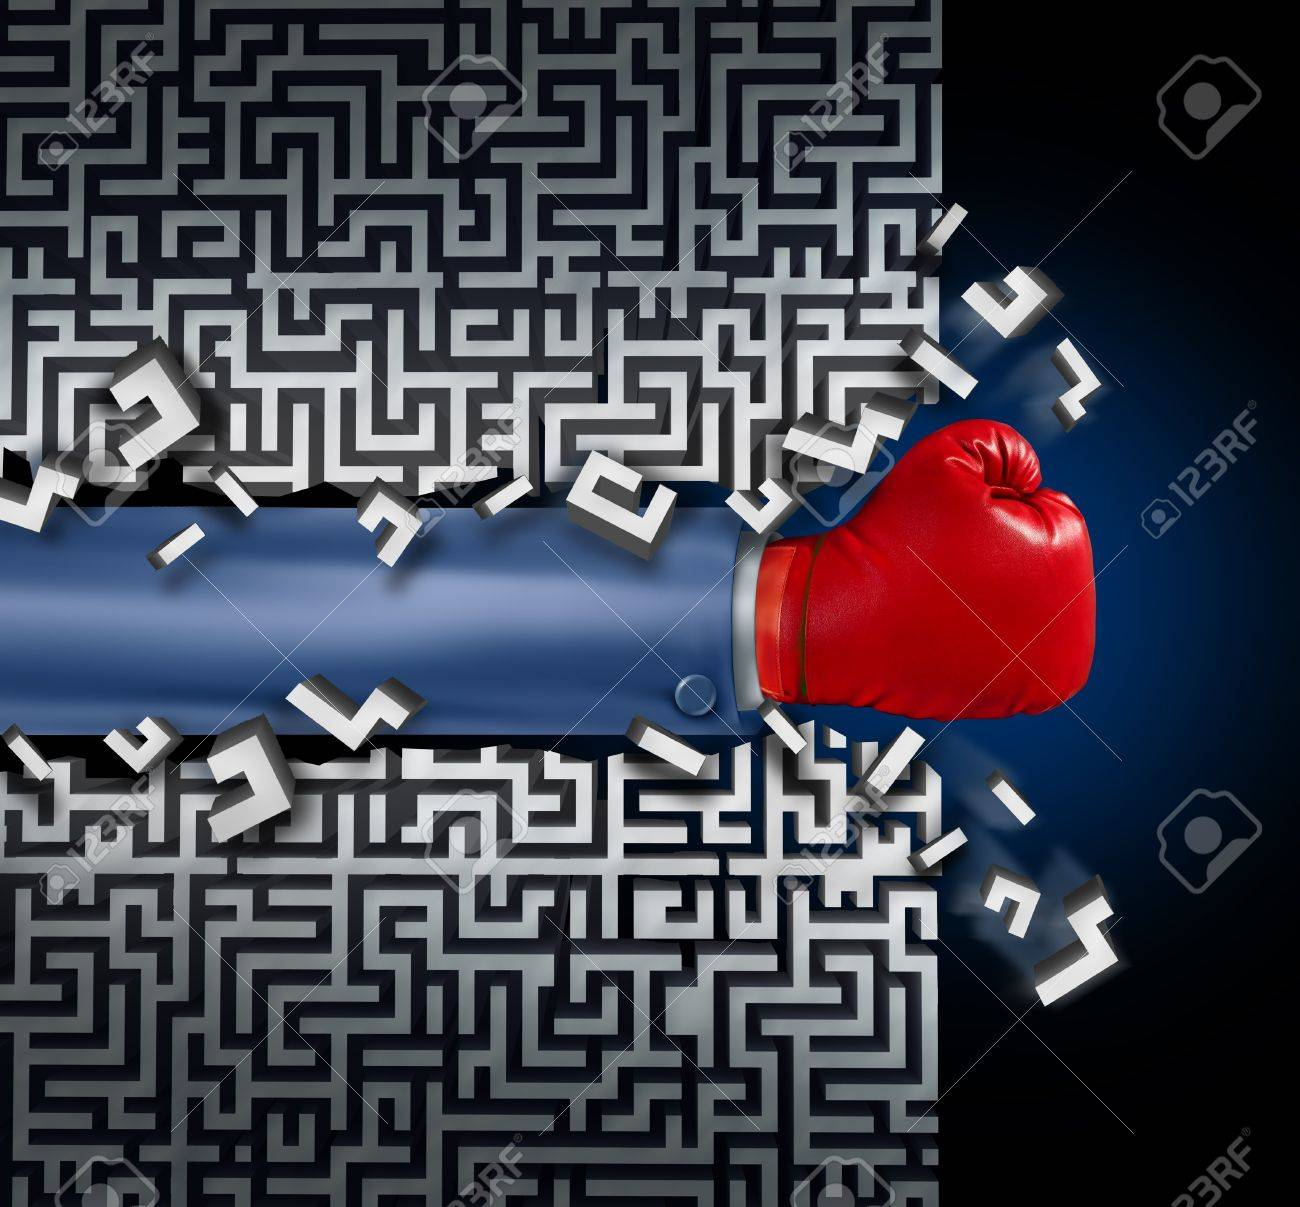 Breaking out leadership and business vision with strategy in corporate challenges and obstacles in a maze with a business man arm with a red boxing glove clearing a path in a labyrinth with a clear solution shortcut for success Stock Photo - 18122524